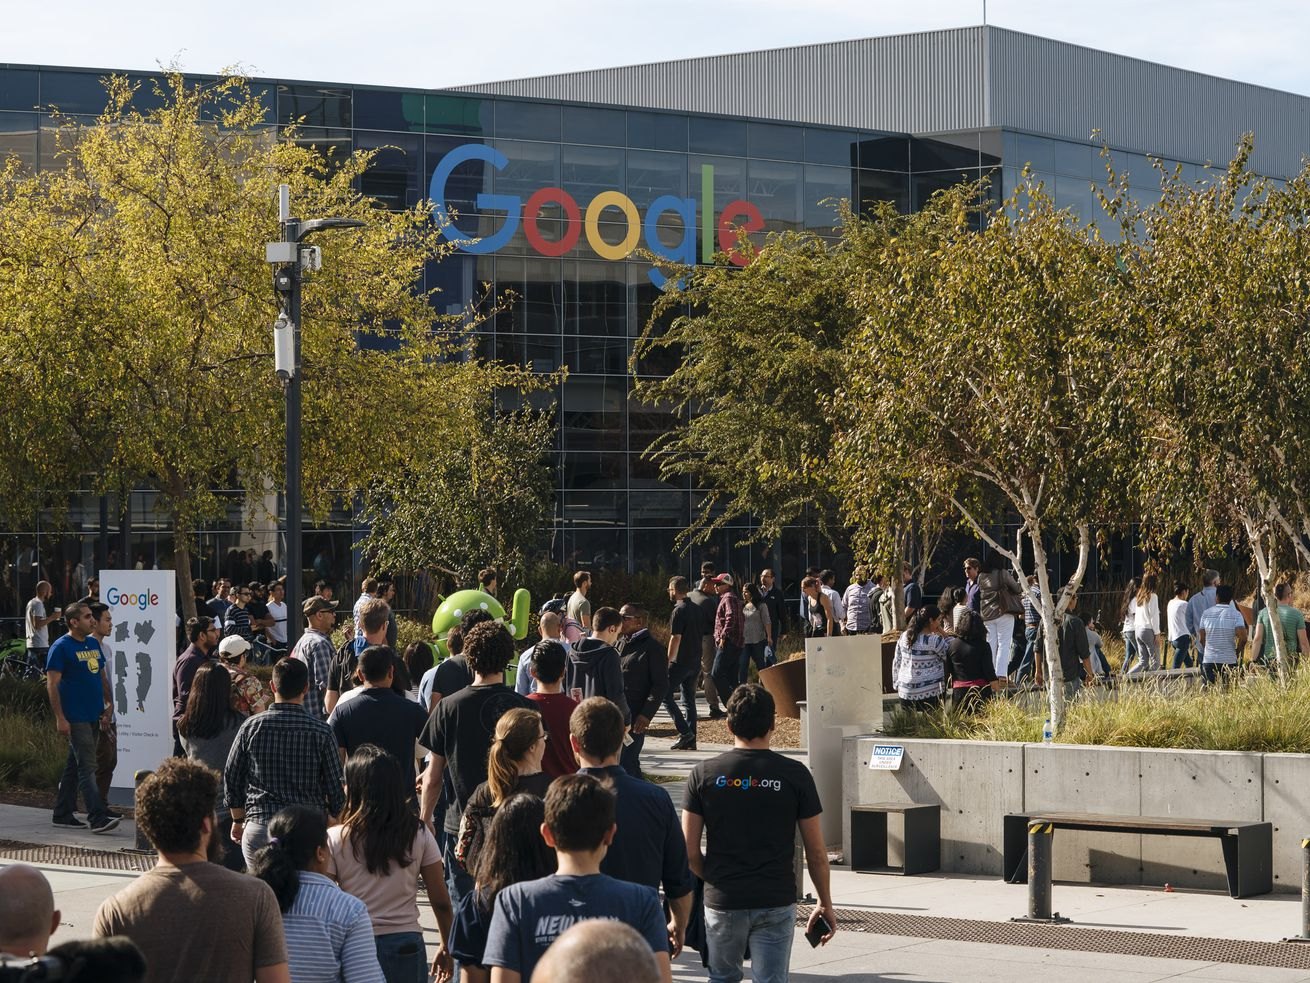 Google employees in Mountain View, CA, walk off the job to protest the company's handlings of sexual misconduct claims.